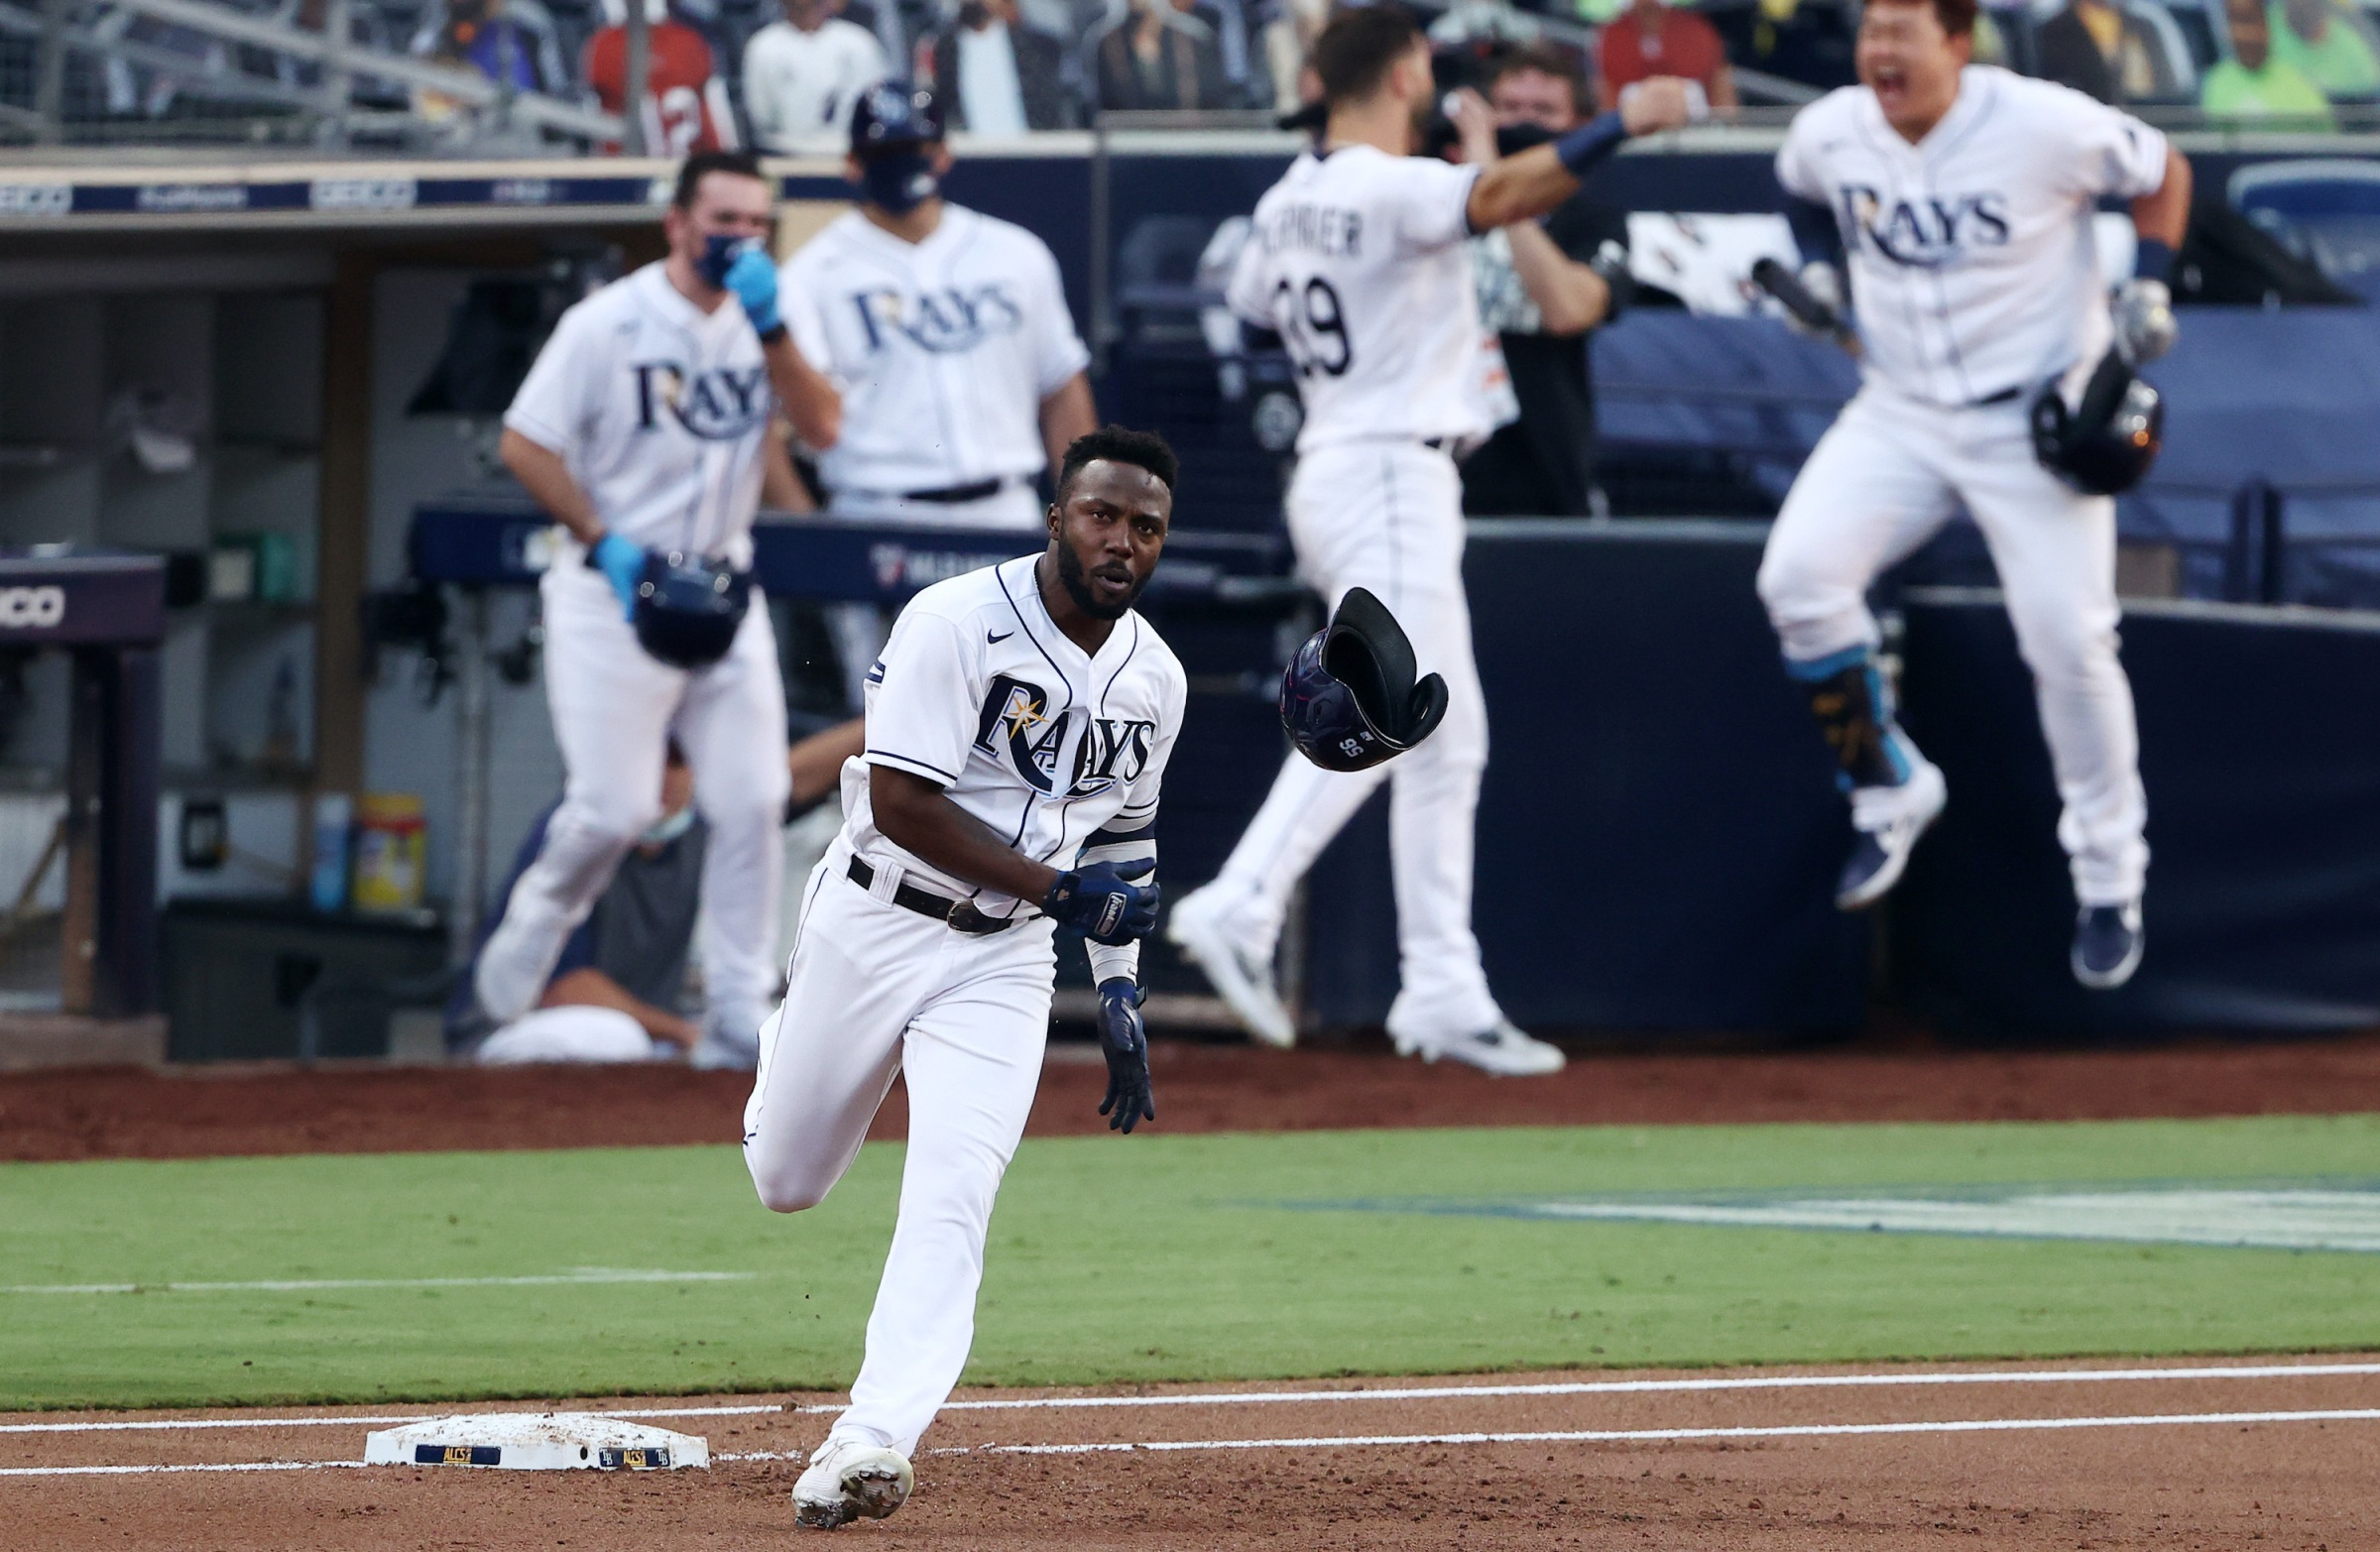 Randy Arozarena of the Tampa Bay Rays rounds the bases after hitting a home run in Game 7 of the ALCS